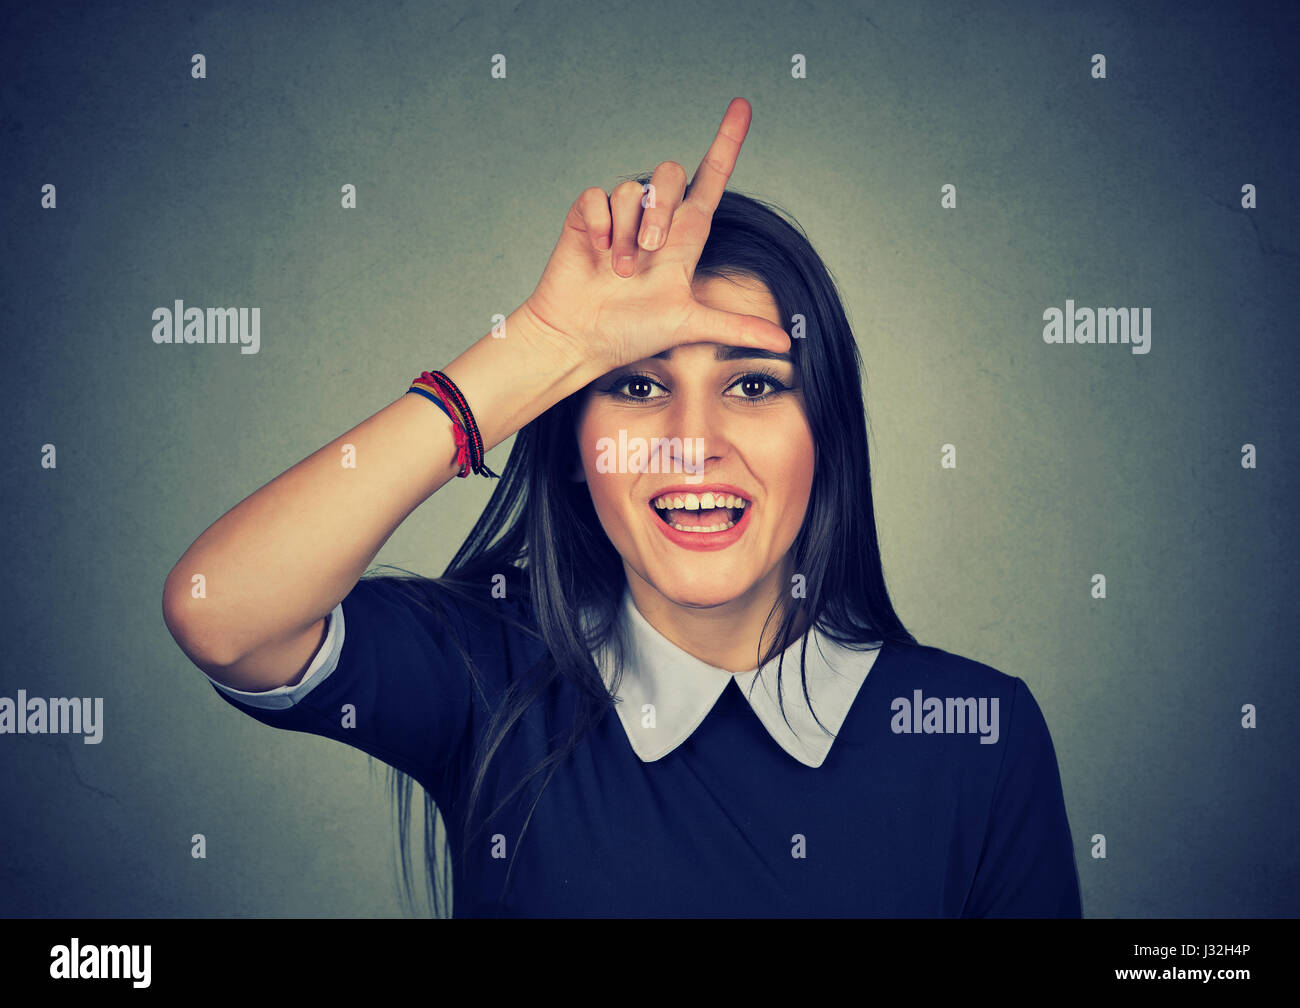 woman giving loser sign looking at you, making fun isolated on gray wall background - Stock Image